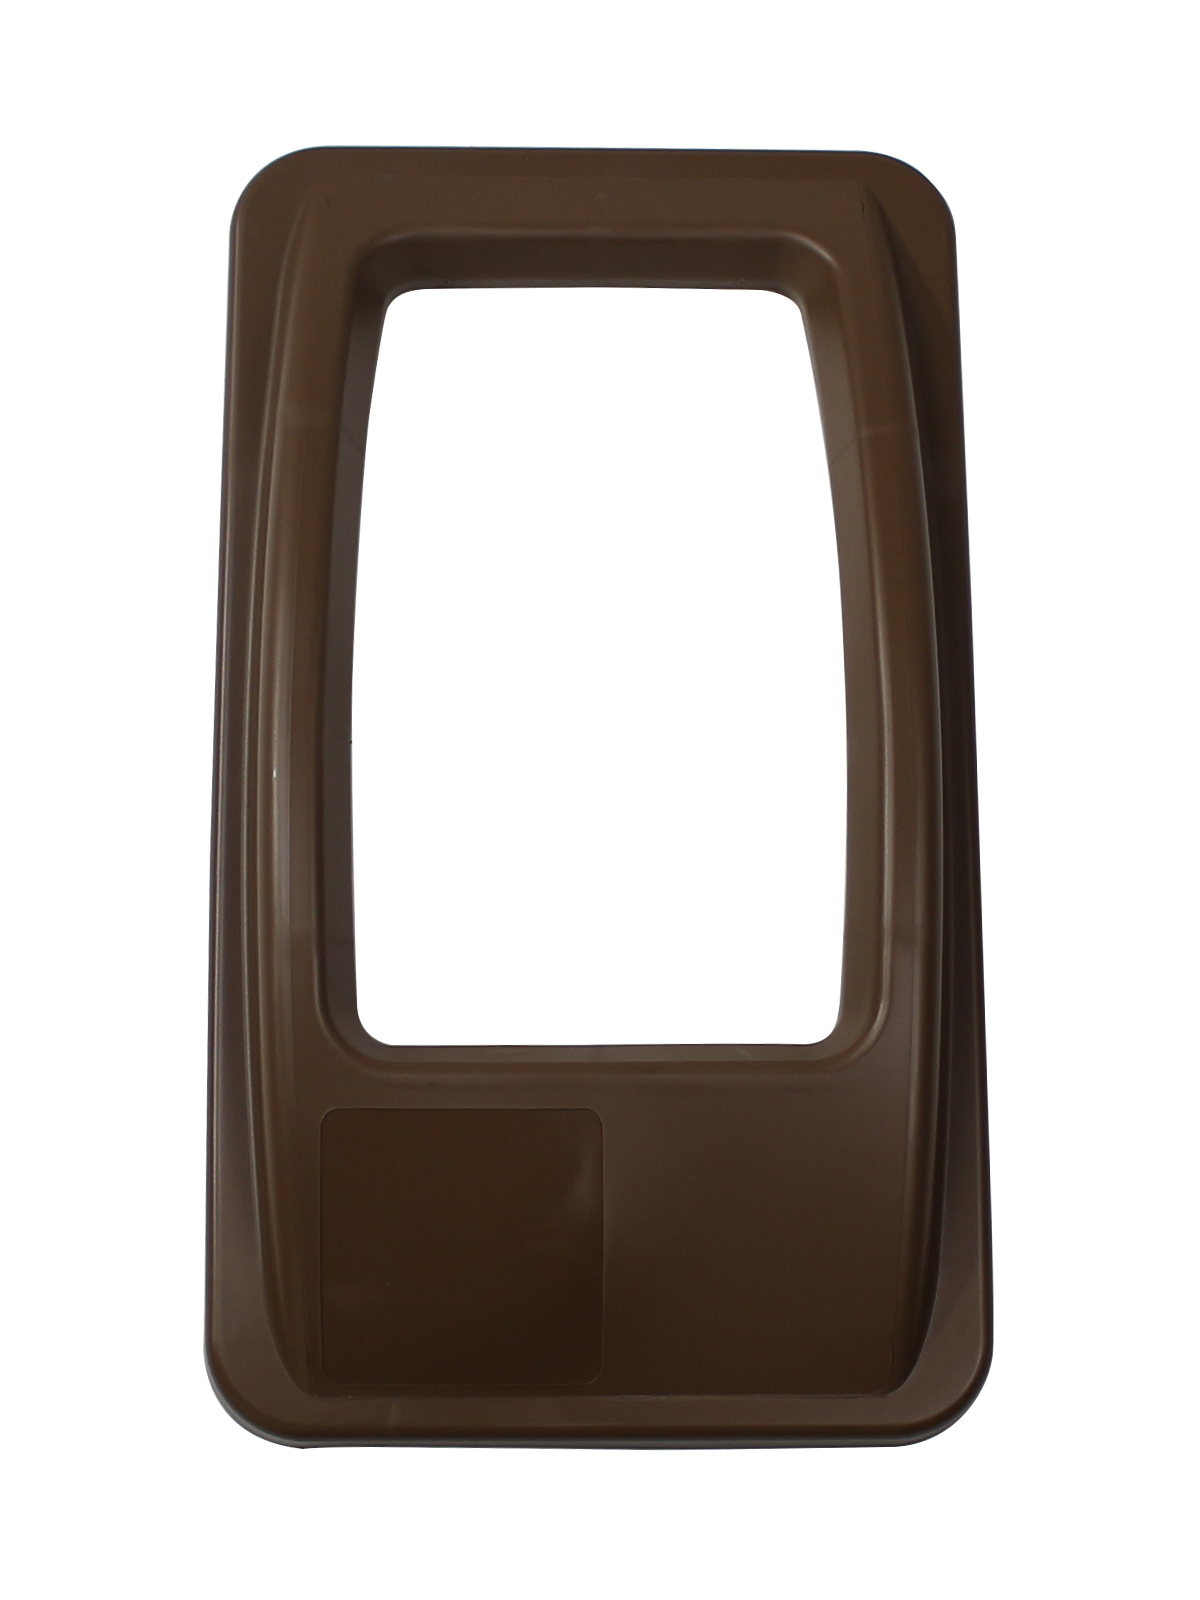 WASTE WATCHER - Lid - Full - Brown